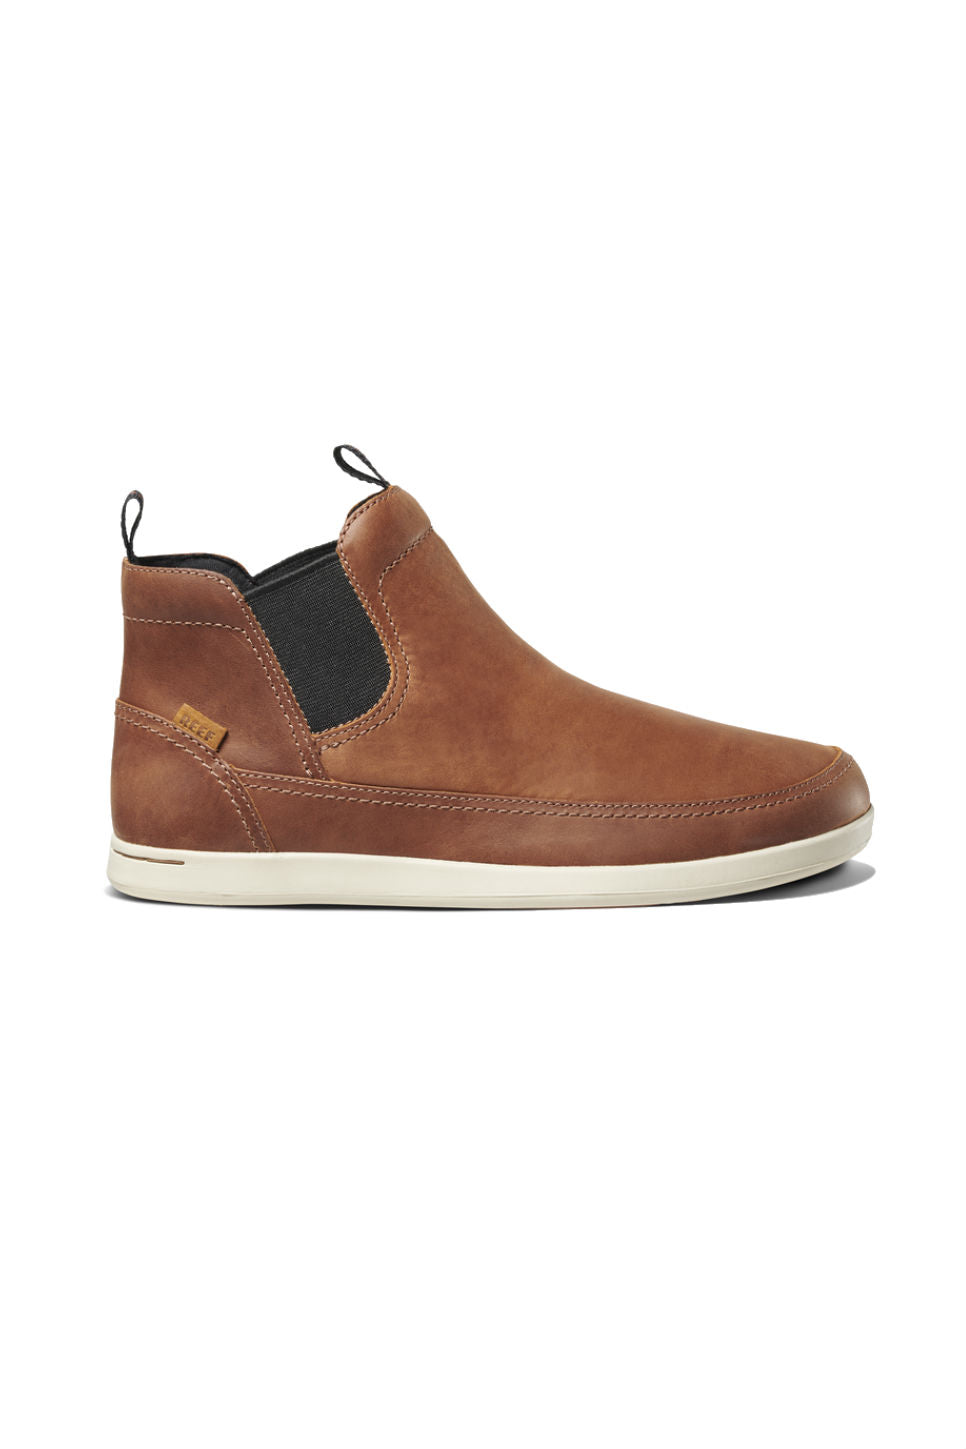 CUSHION SWAMI MID LE - TOBACCO/CORK